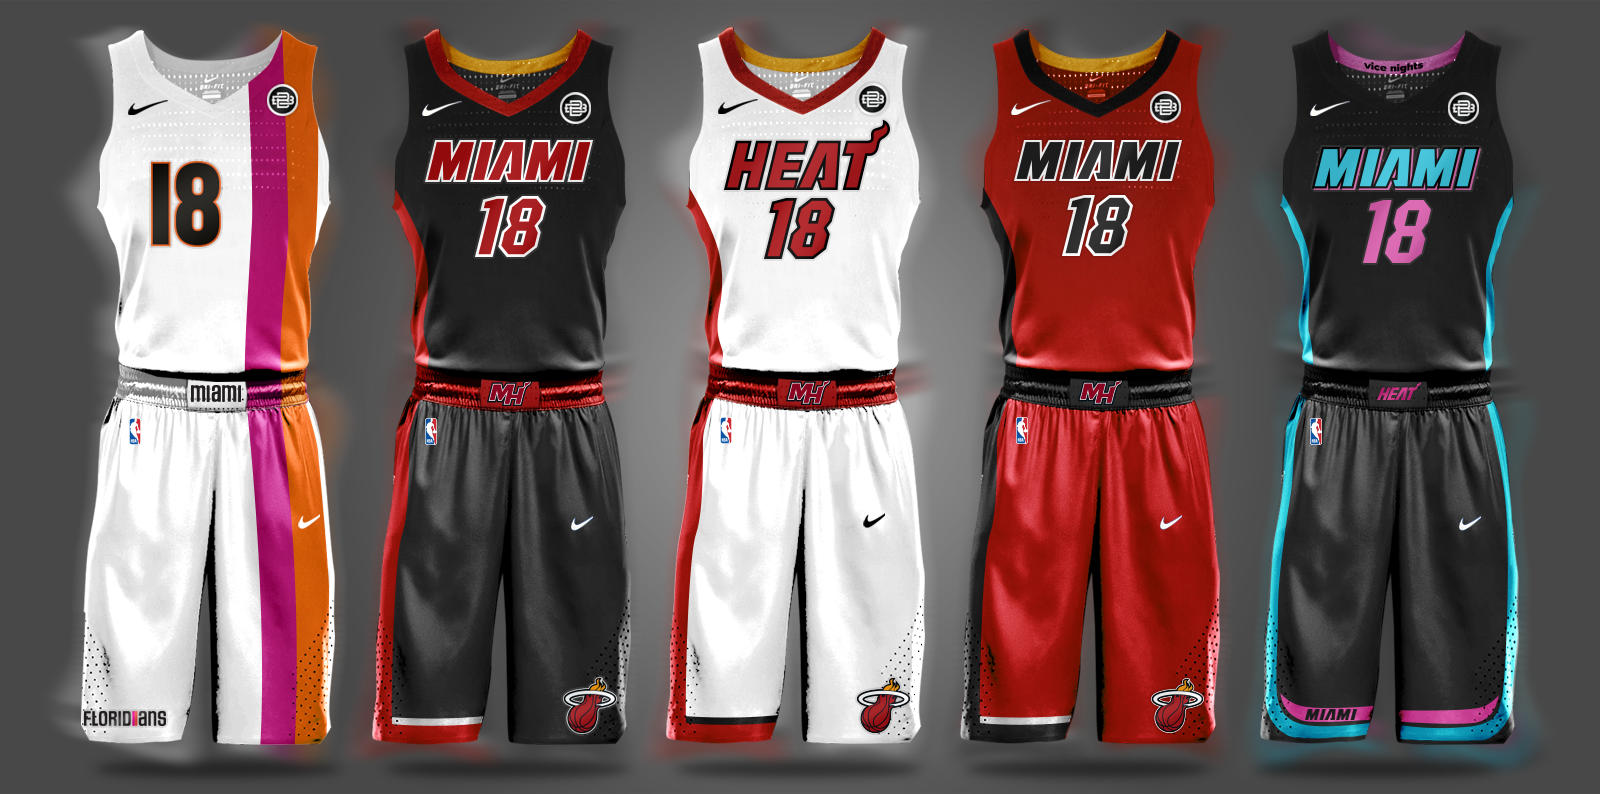 huge selection of b3cc2 bd52c NBA Nike Uniform Concepts - I Am Brian Begley